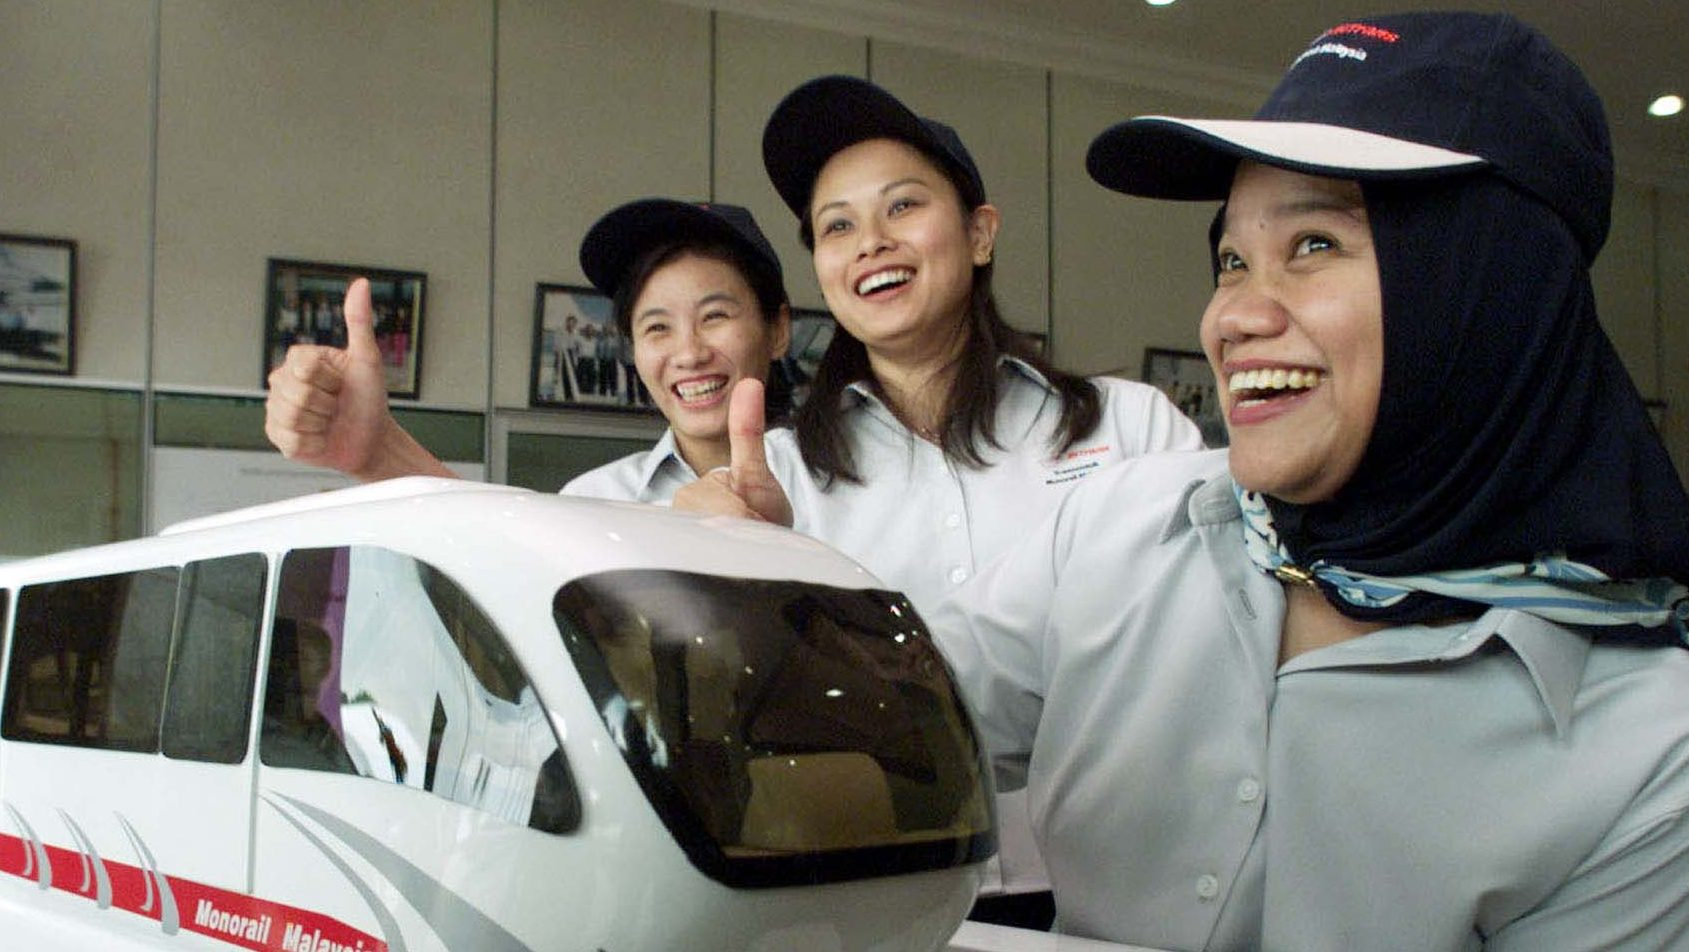 Monorail Malaysia Technology staff members (L to R) Ong Pei Fong, Mak Jyhmin and Shamsidar Jazuri give the thumbs up signs next to the first made-in-Malaysia light rail trains model after the launch near Kuala Lumpur May 28, 2001. Monorail Malaysia Technology, a sister company of KL Monorail on Monday will produce 24 cars as well as provide signalling, electrical and power systems for KL Monorail. - PBEAHULATCP